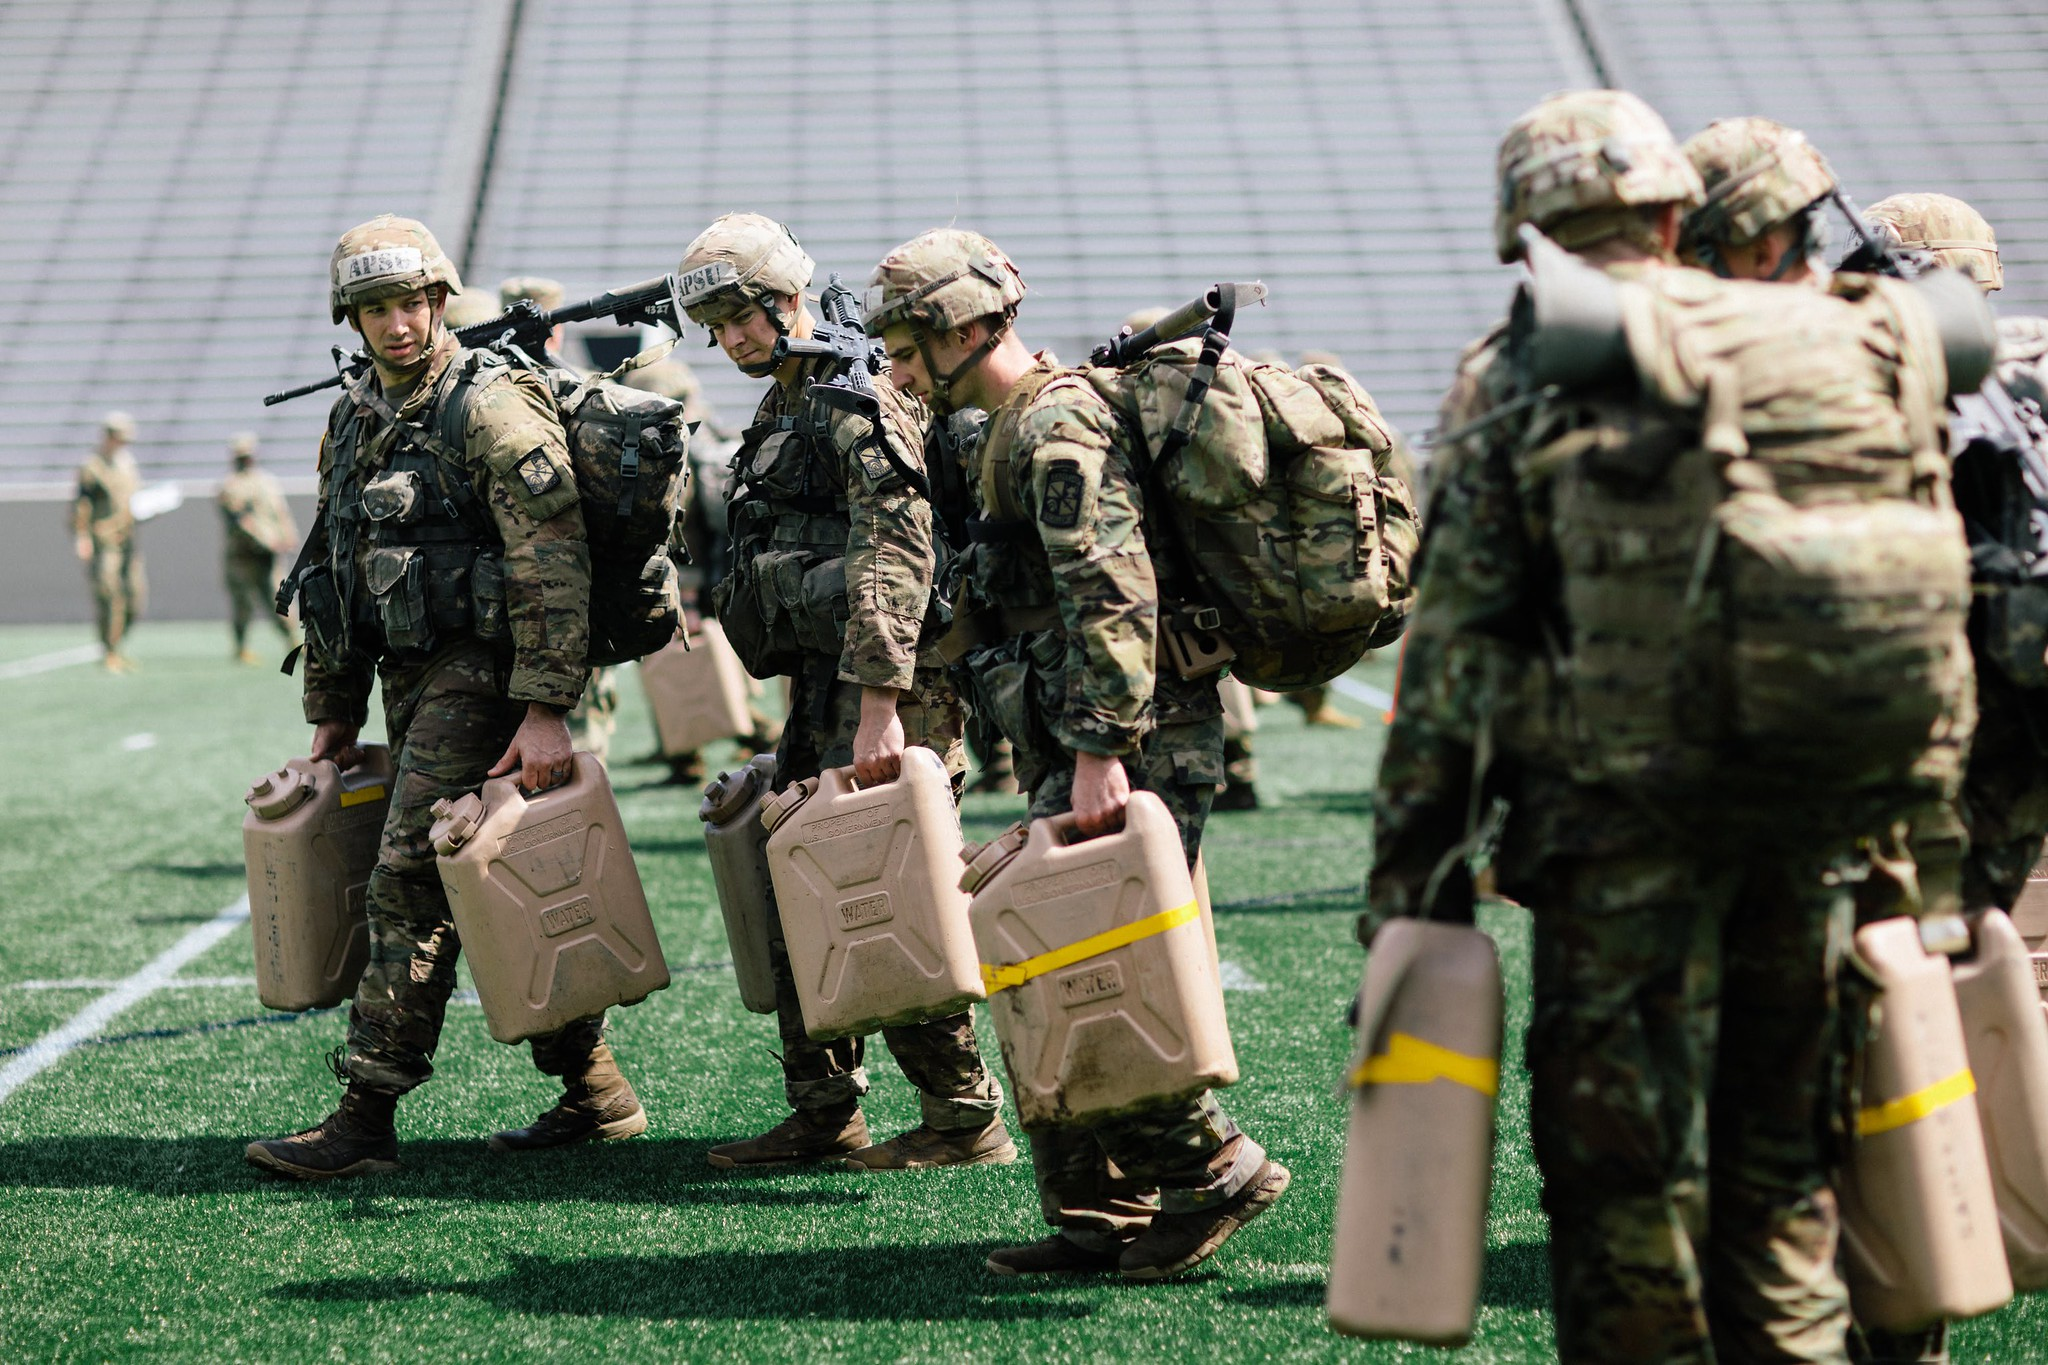 Austin Peay cadets finish eighth in ROTC division at world-class Sandhurst competition